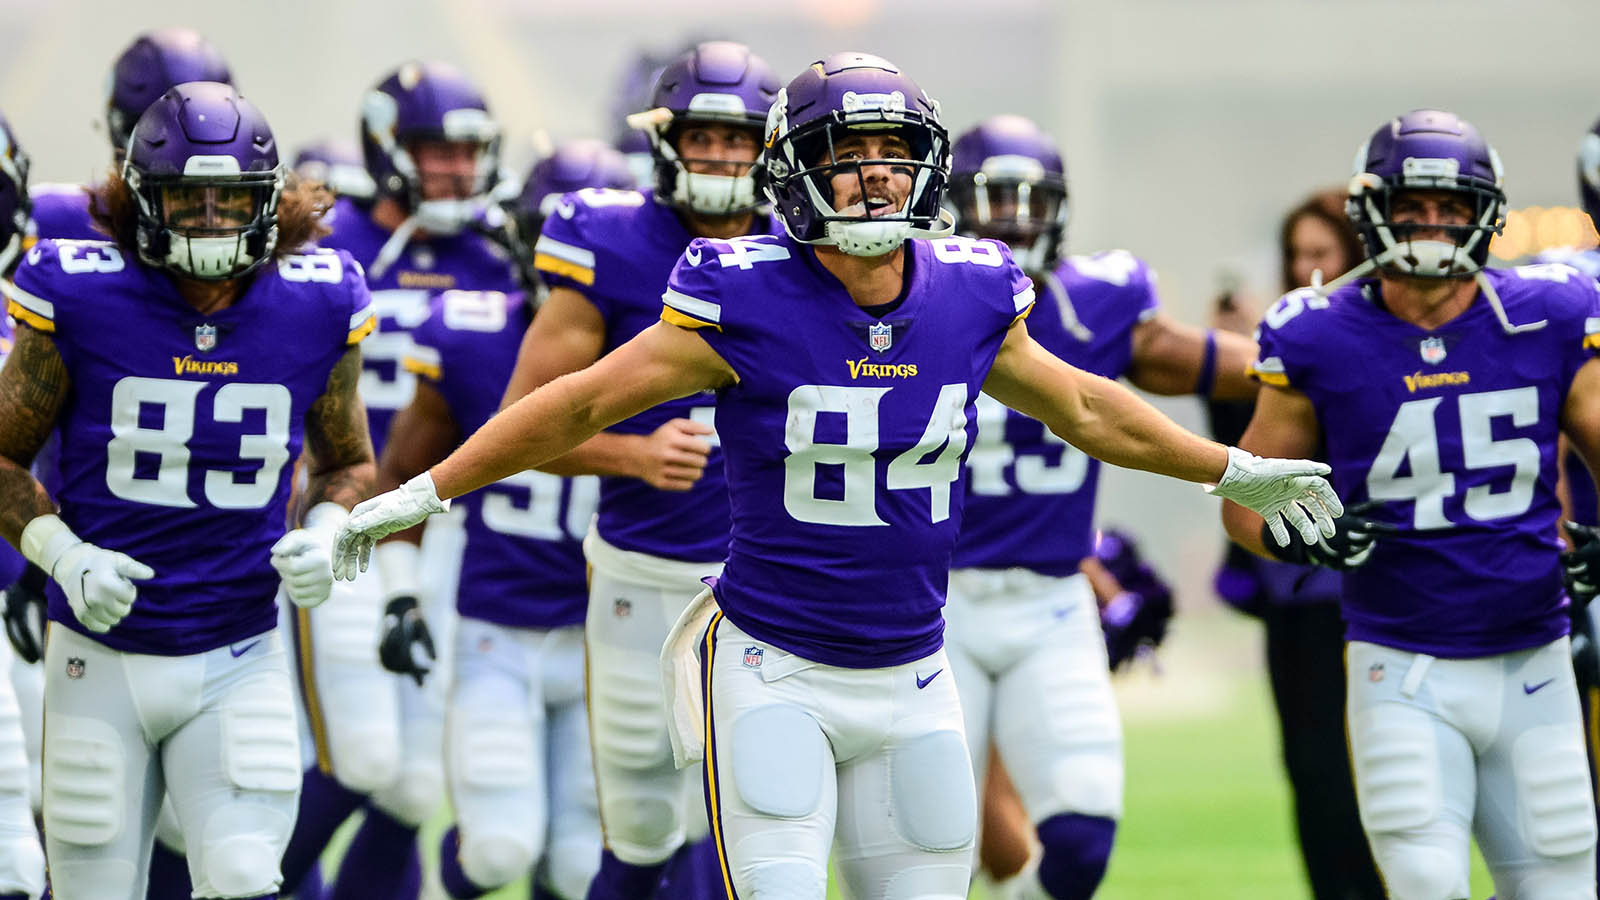 Aug 18, 2018; Minneapolis, MN, USA; Minnesota Vikings wide receiver Chad Beebe (84) leads the Vikings onto the field against the Jacksonville Jaguars before the game at U.S. Bank Stadium. Mandatory Credit: Jeffrey Becker-USA TODAY Sports